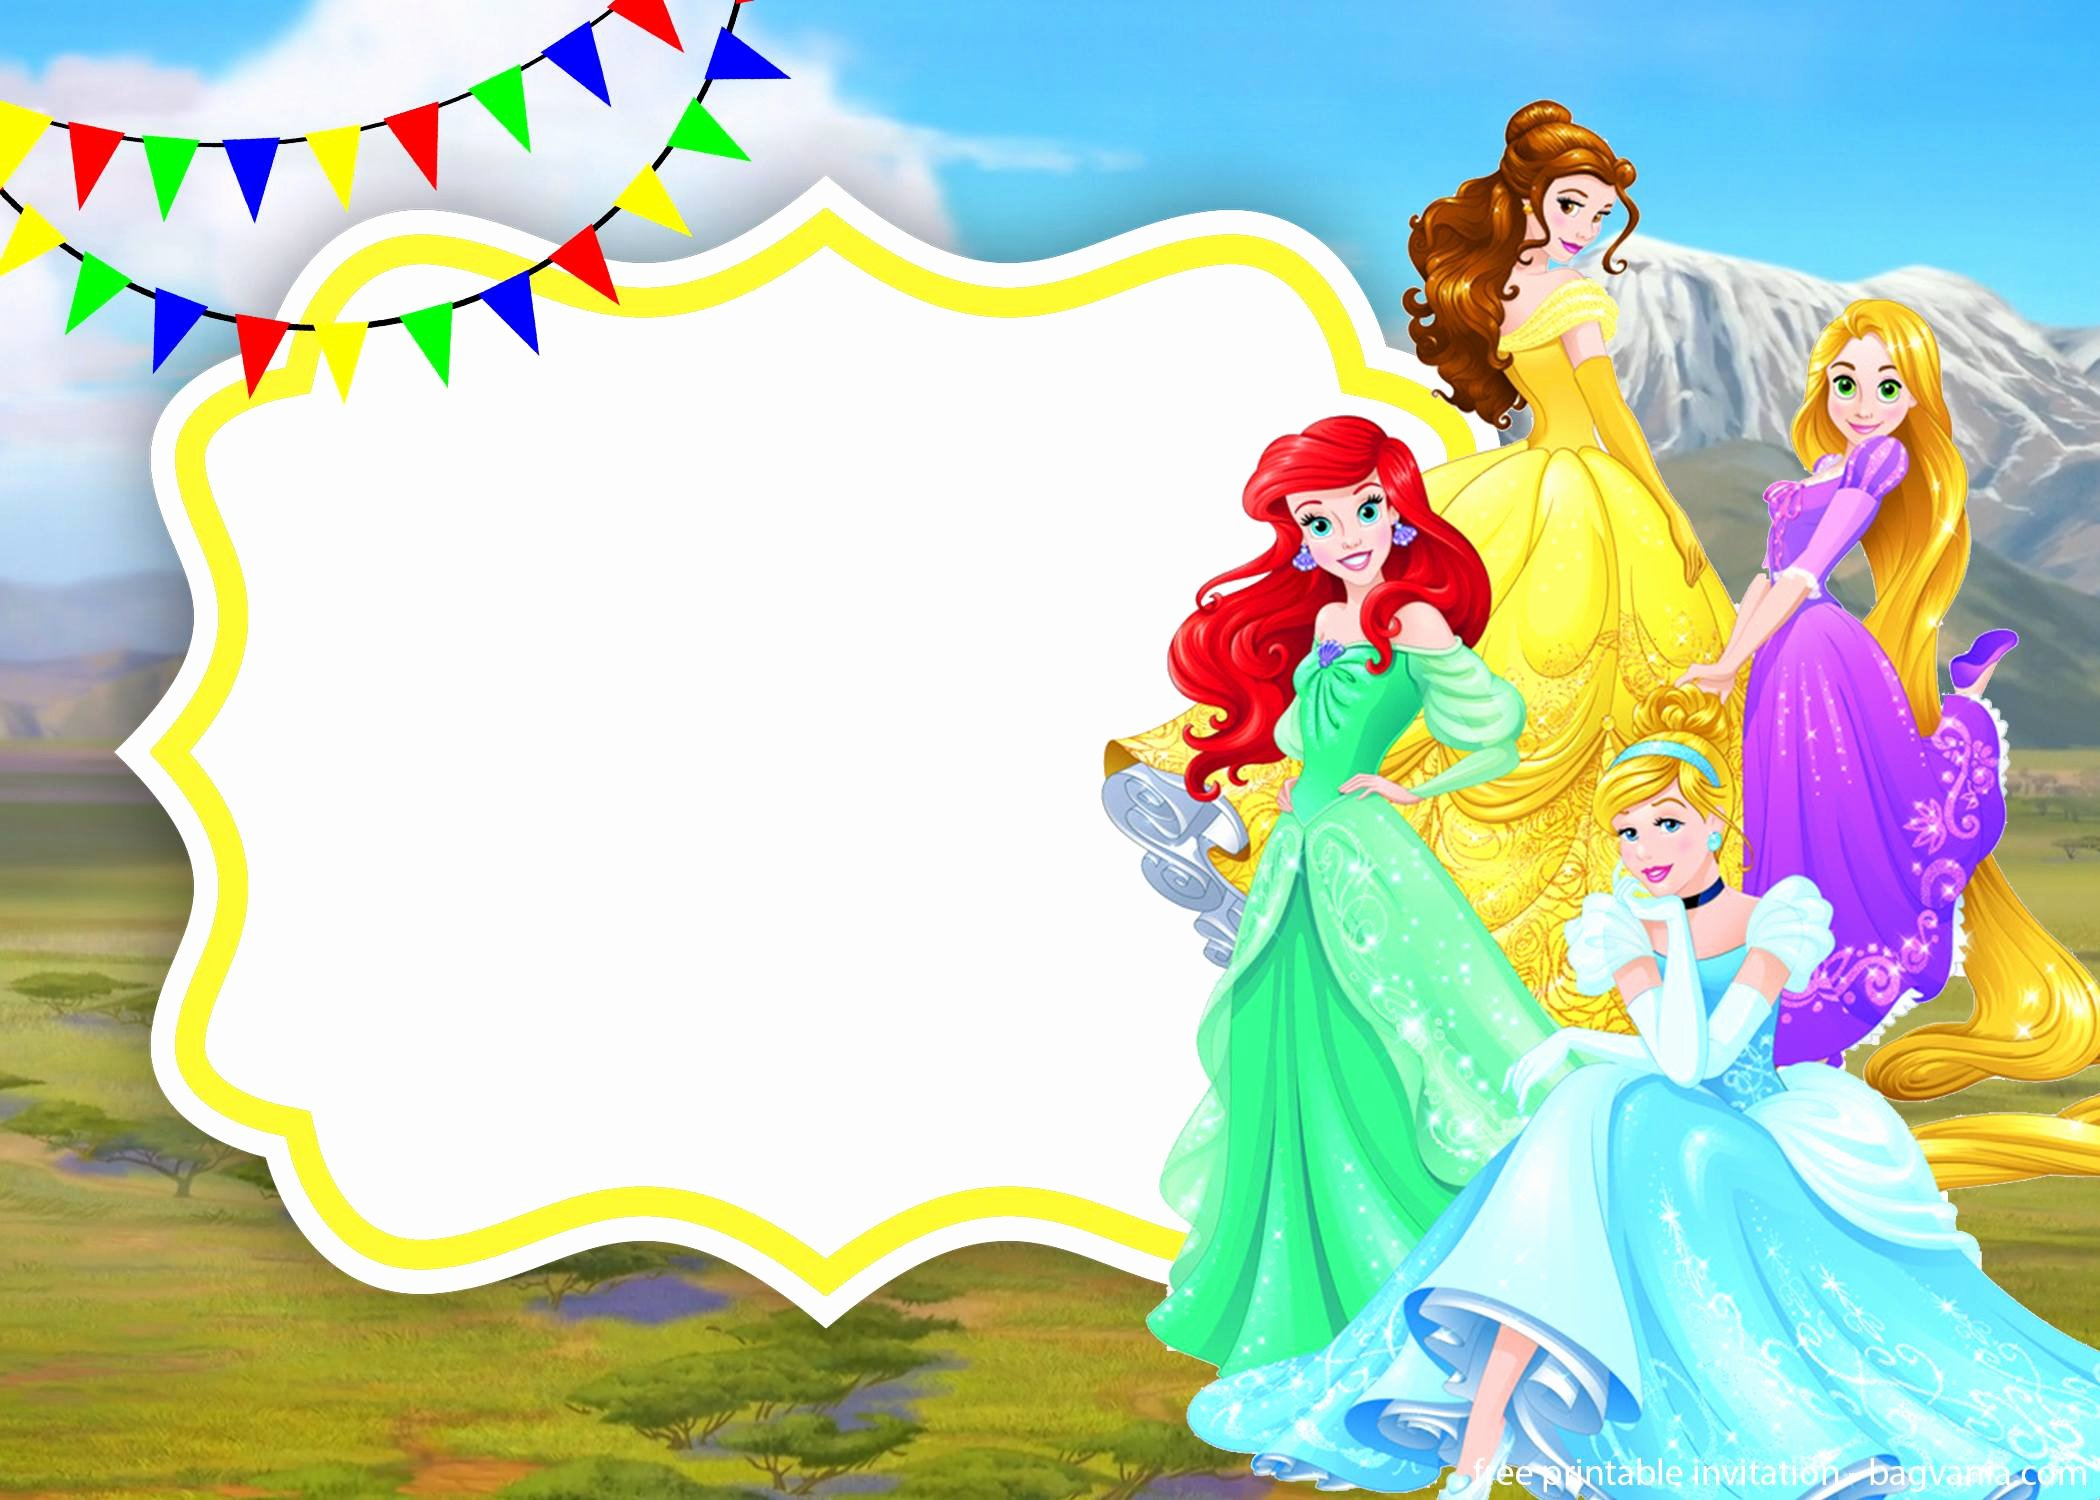 Disney Princess Invitation Templates Free Luxury Golden Disney Princesses Invitation Template – Free